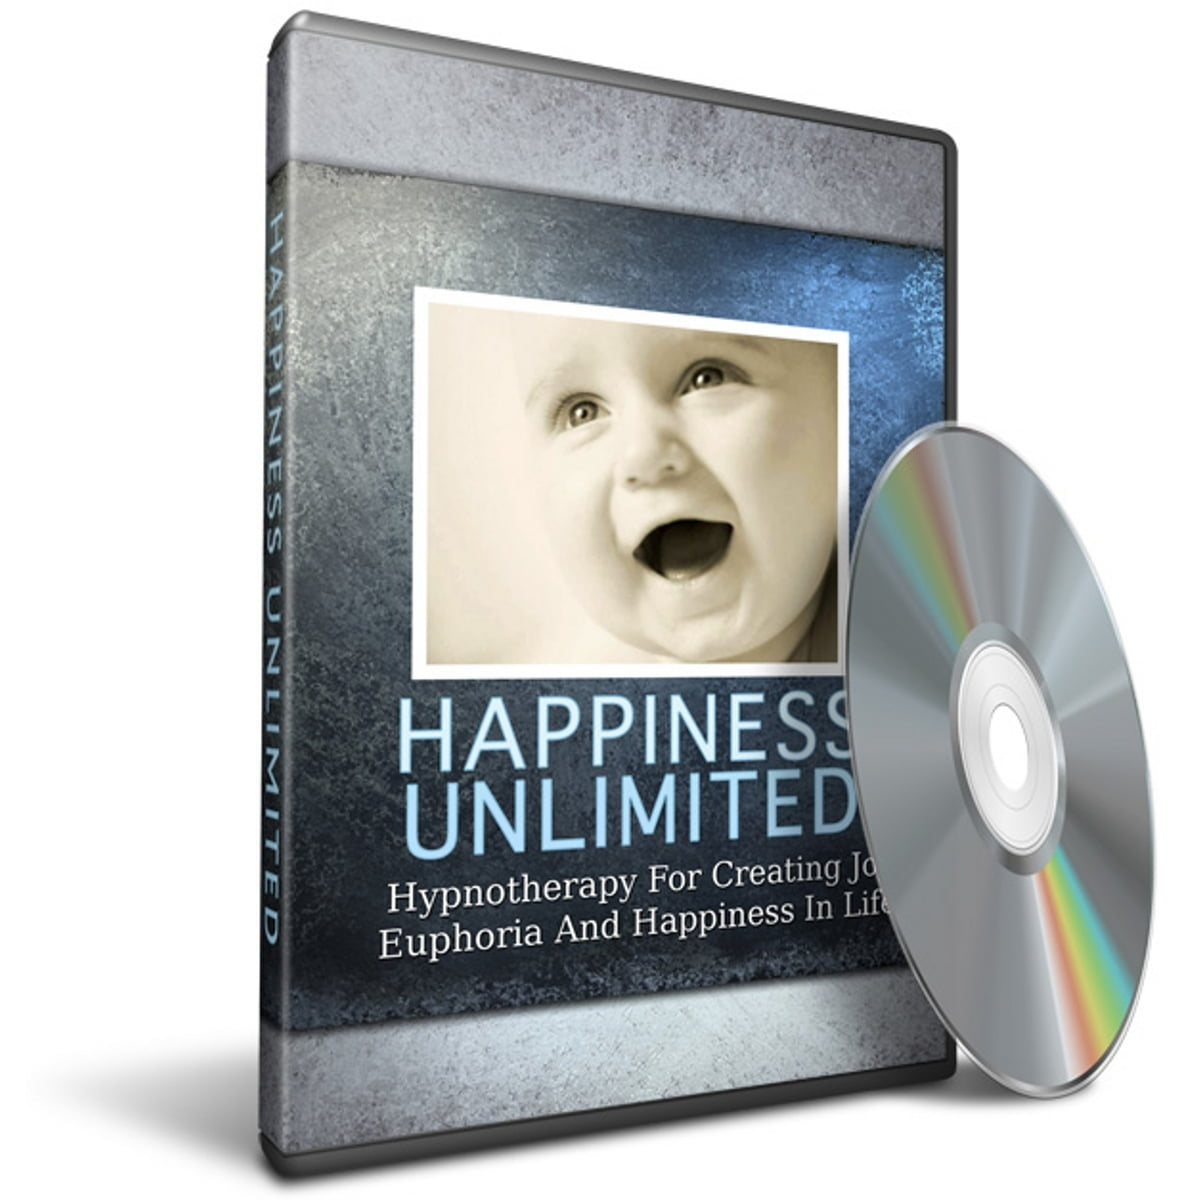 Hypnosis for Creating Joy In Your Life audiobook by Be Conscious Creators -  Rakuten Kobo